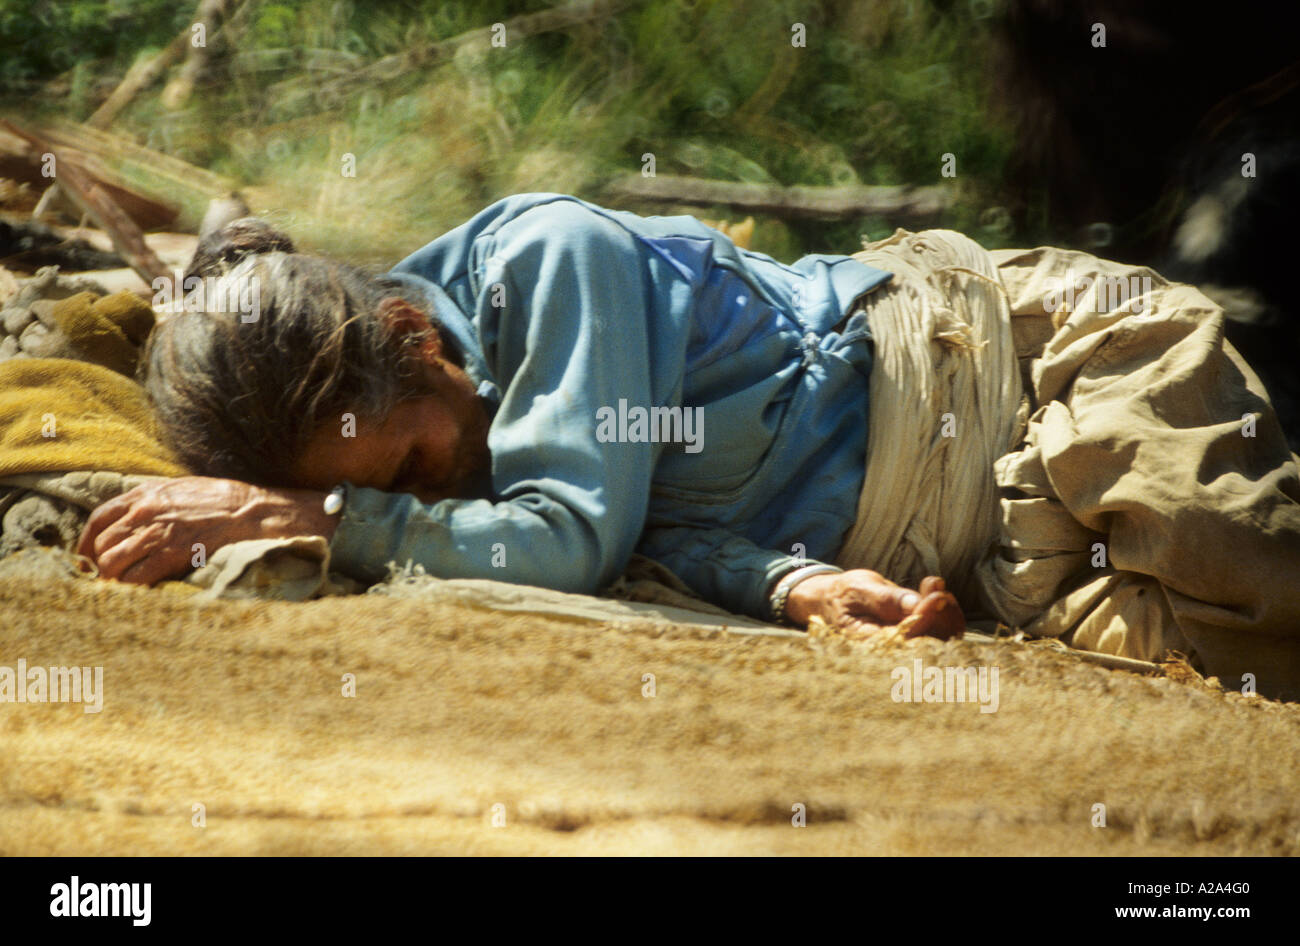 woman sleeping Nepal Asia candid unposed winnowing grain on mat harvest agriculture rural portrait rice wheat basket - Stock Image